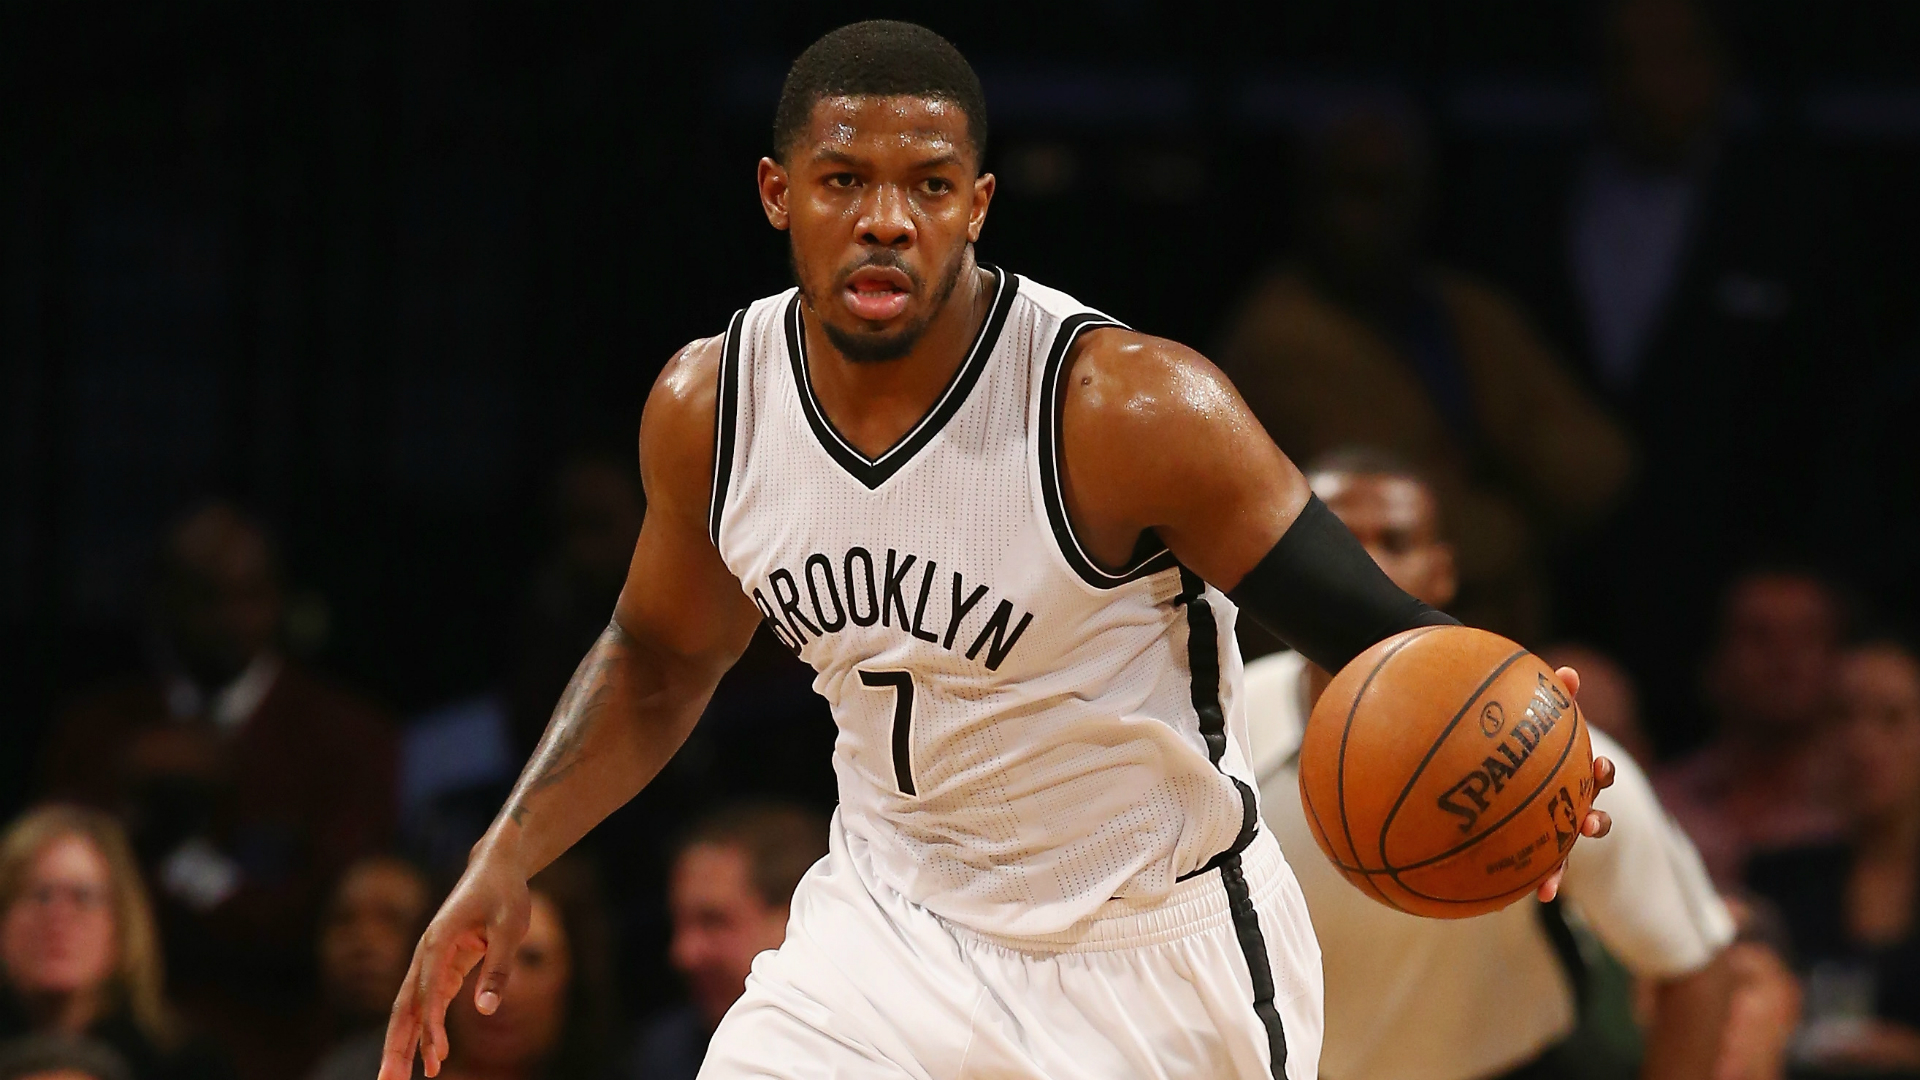 Joe Johnson to sign with Rockets, report says | NBA ...